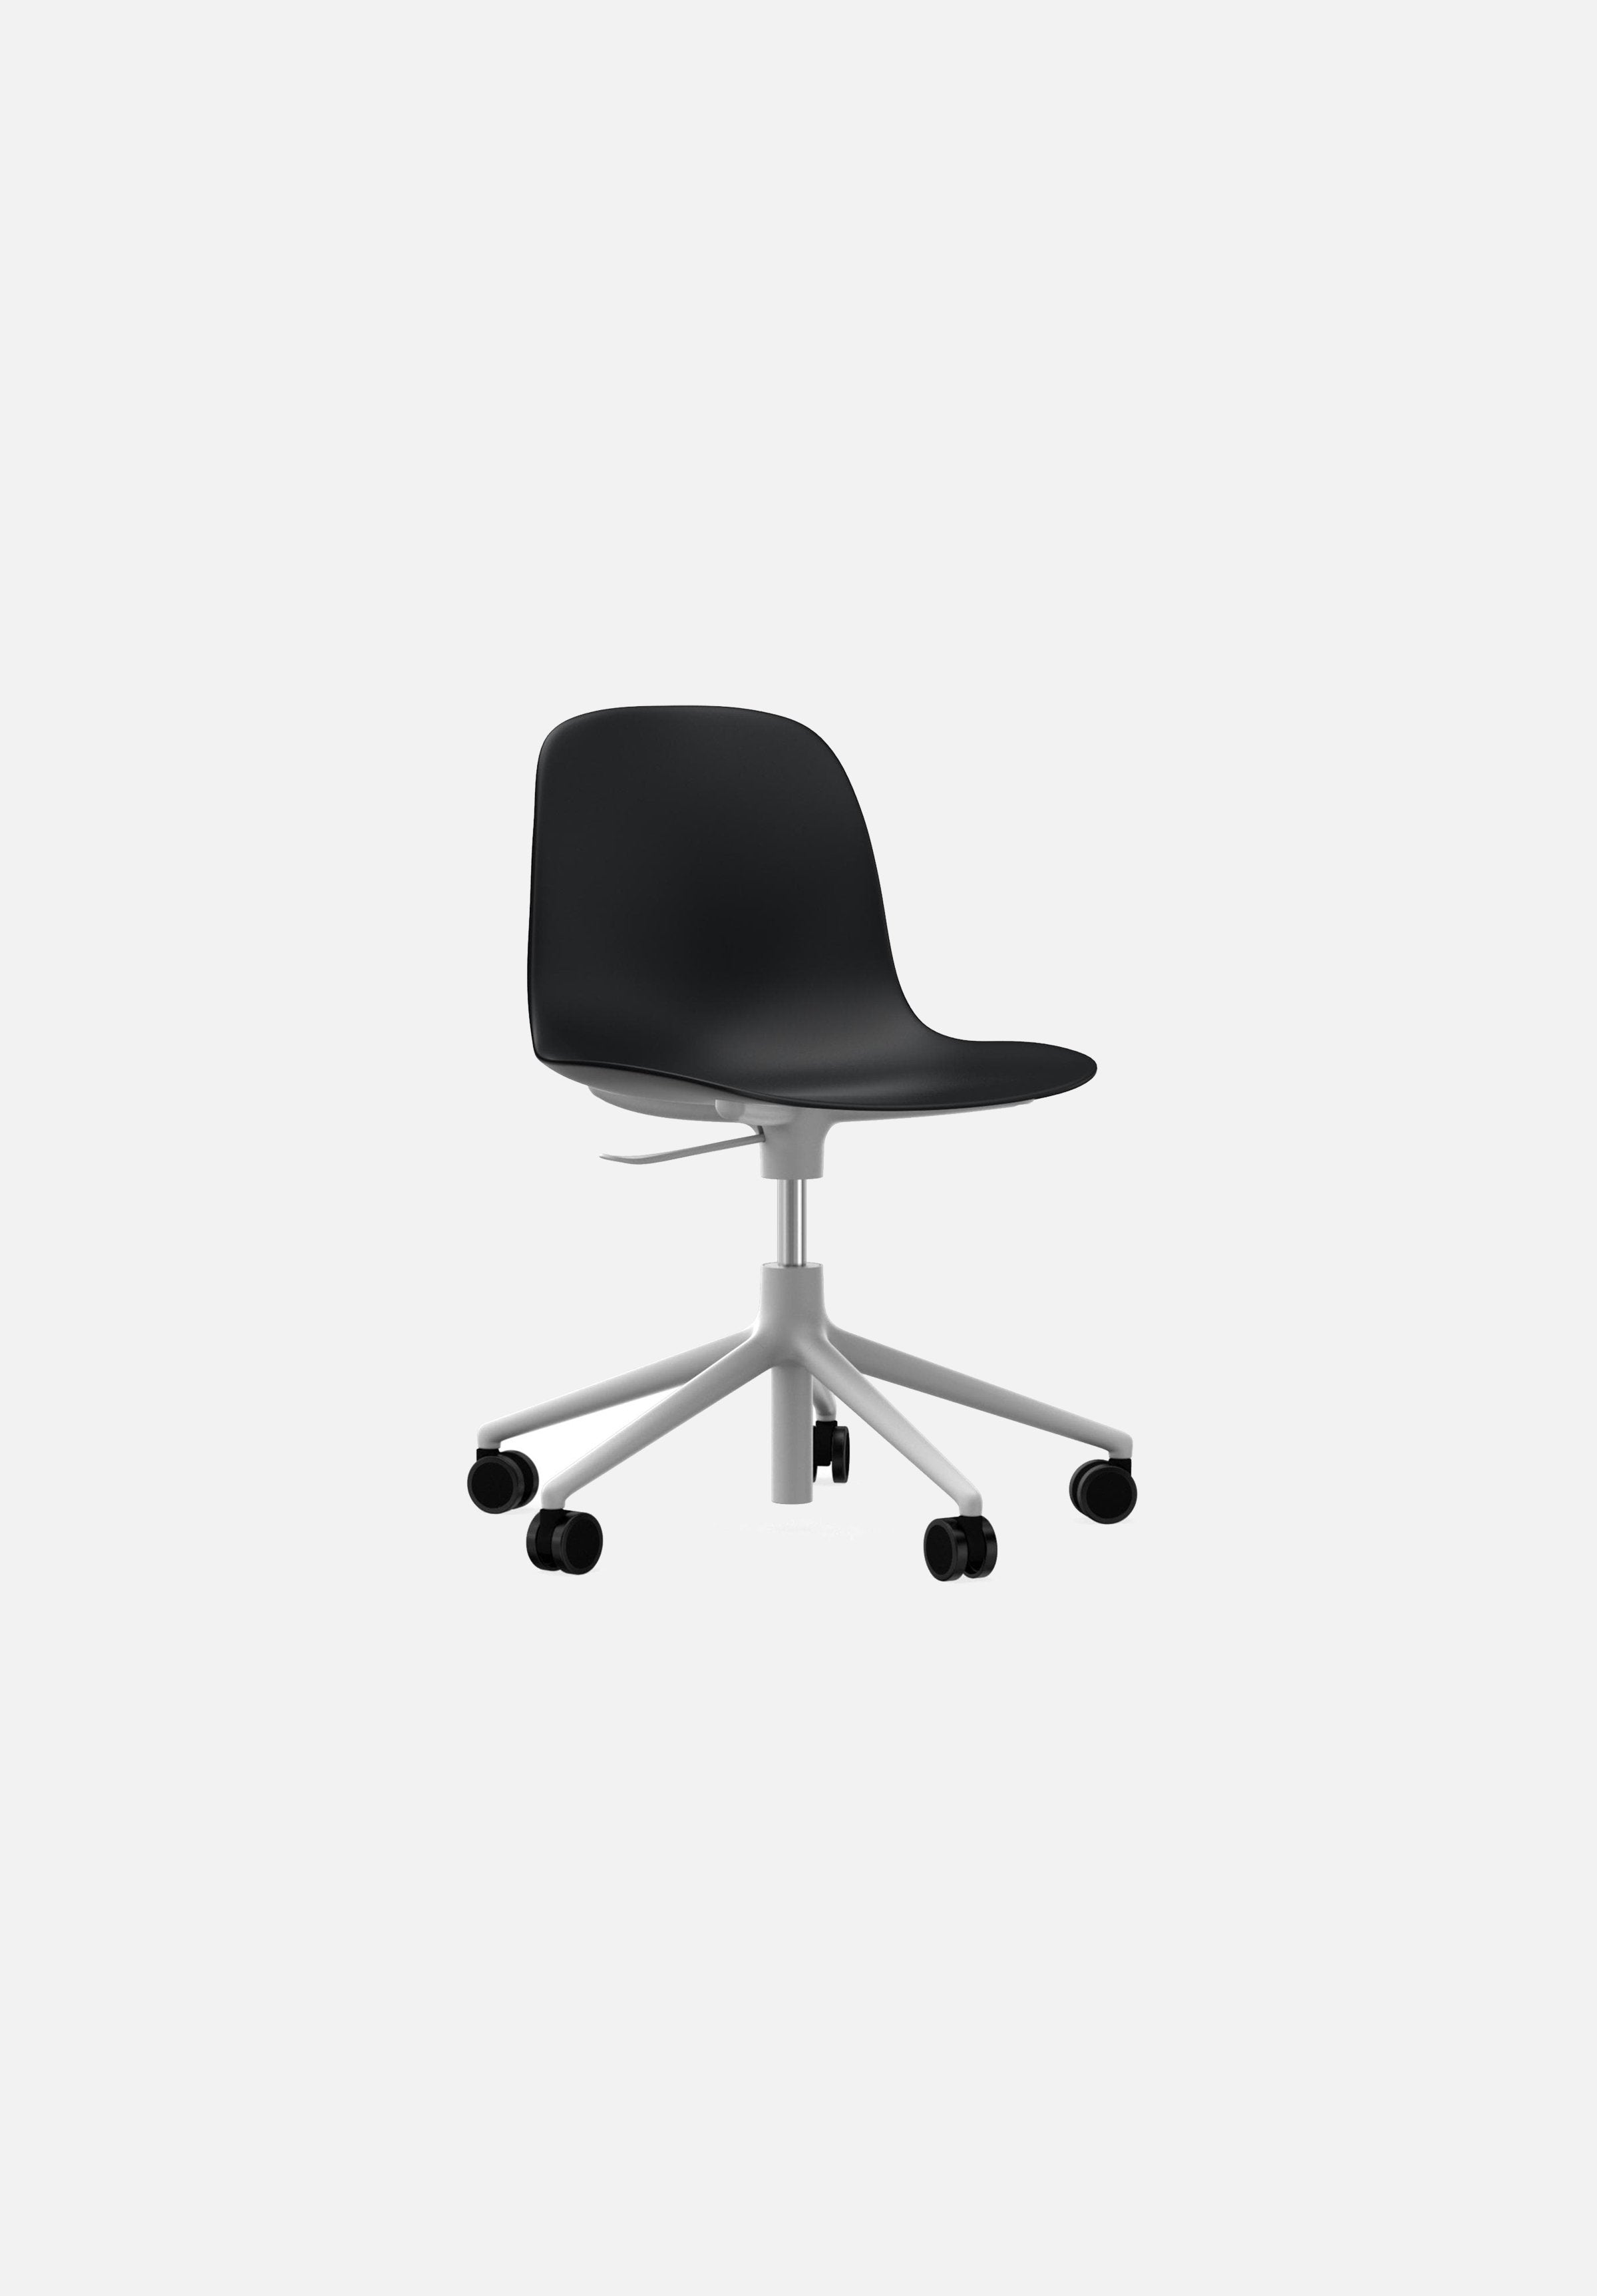 Form Chair — Swivel Gaslift-Simon Legald-Normann Copenhagen-Black-White Aluminum-Average-canada-design-store-danish-denmark-furniture-interior